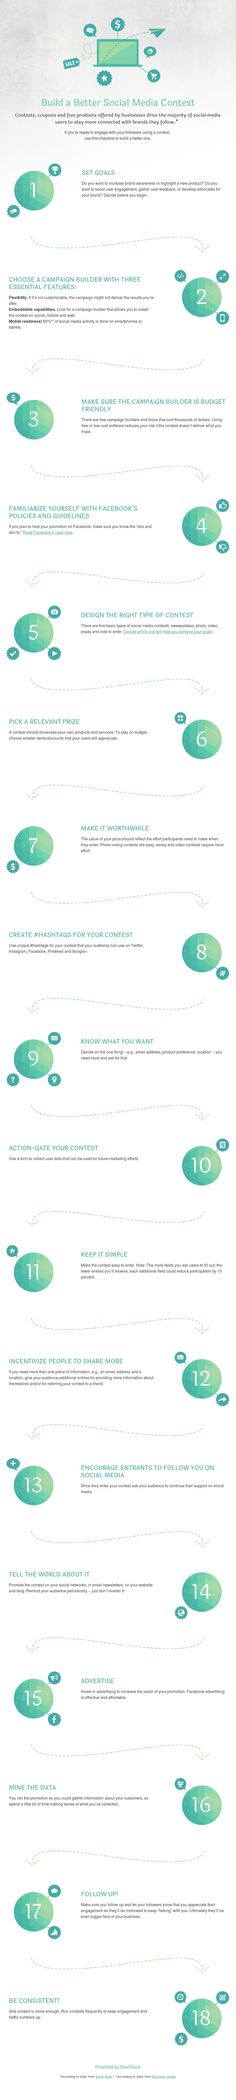 How To Build a Successful Social Media Contest - #infographic #SocialMedia #marketing